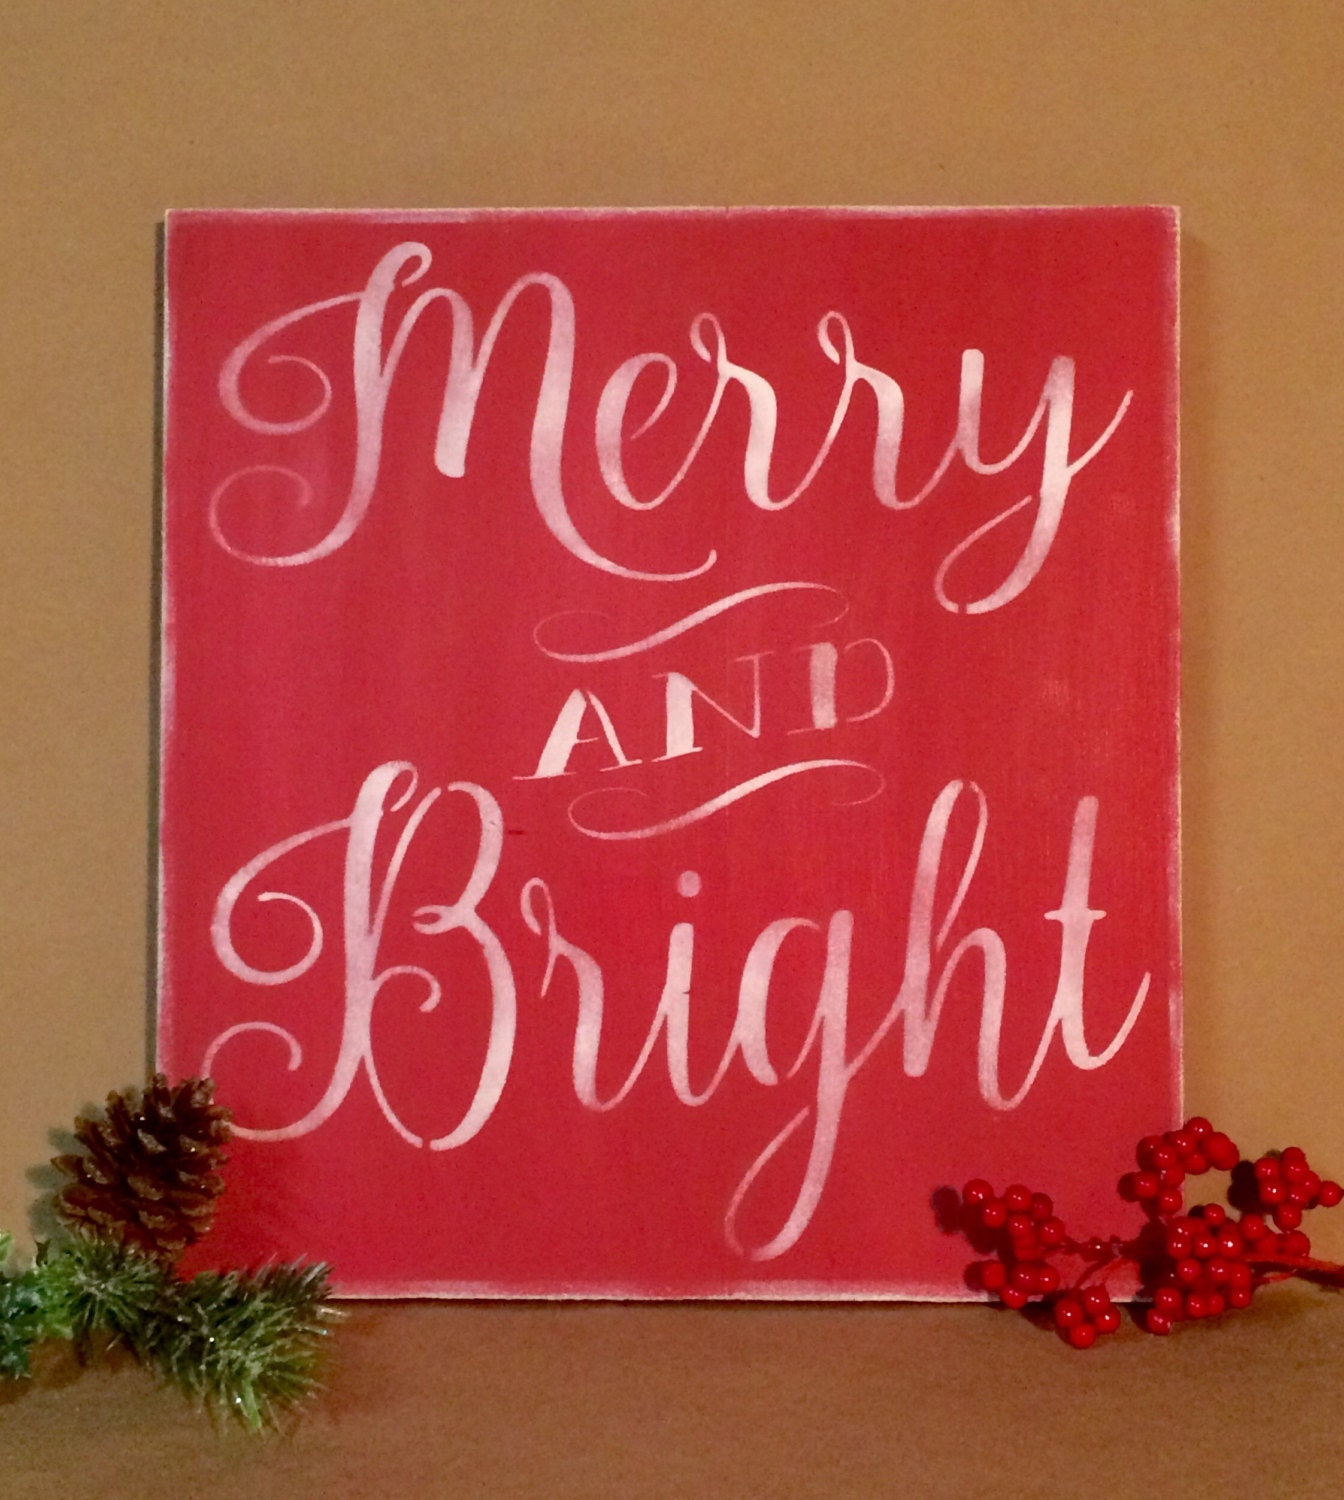 christmas wood signs wood sign wood wall hanging christmas gifts wooden sign - Christmas Wooden Signs